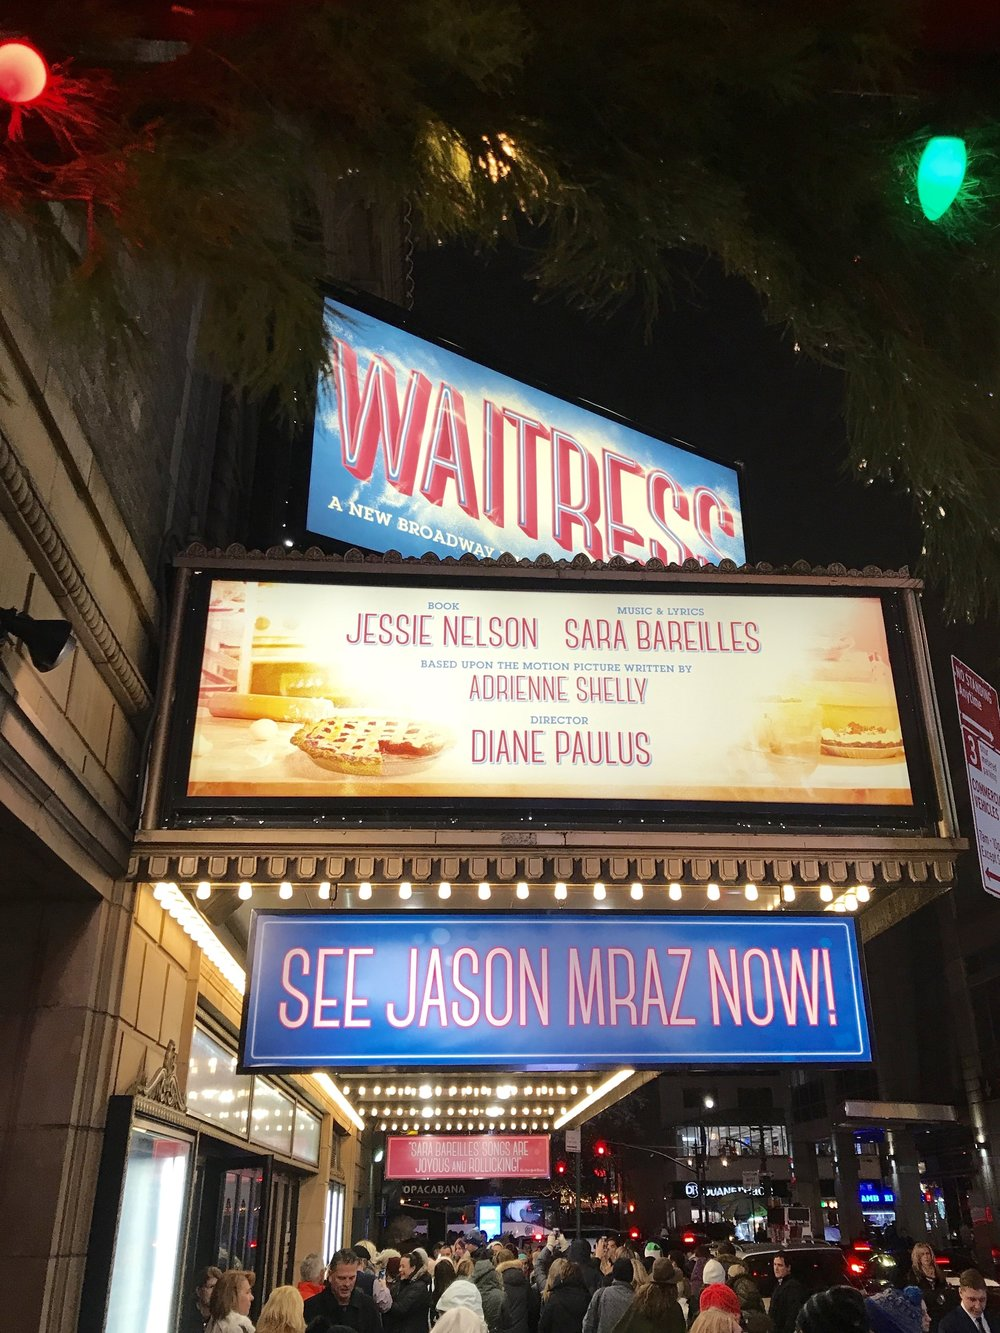 Waitress: The Musical on Broadway, NYC at Christmas